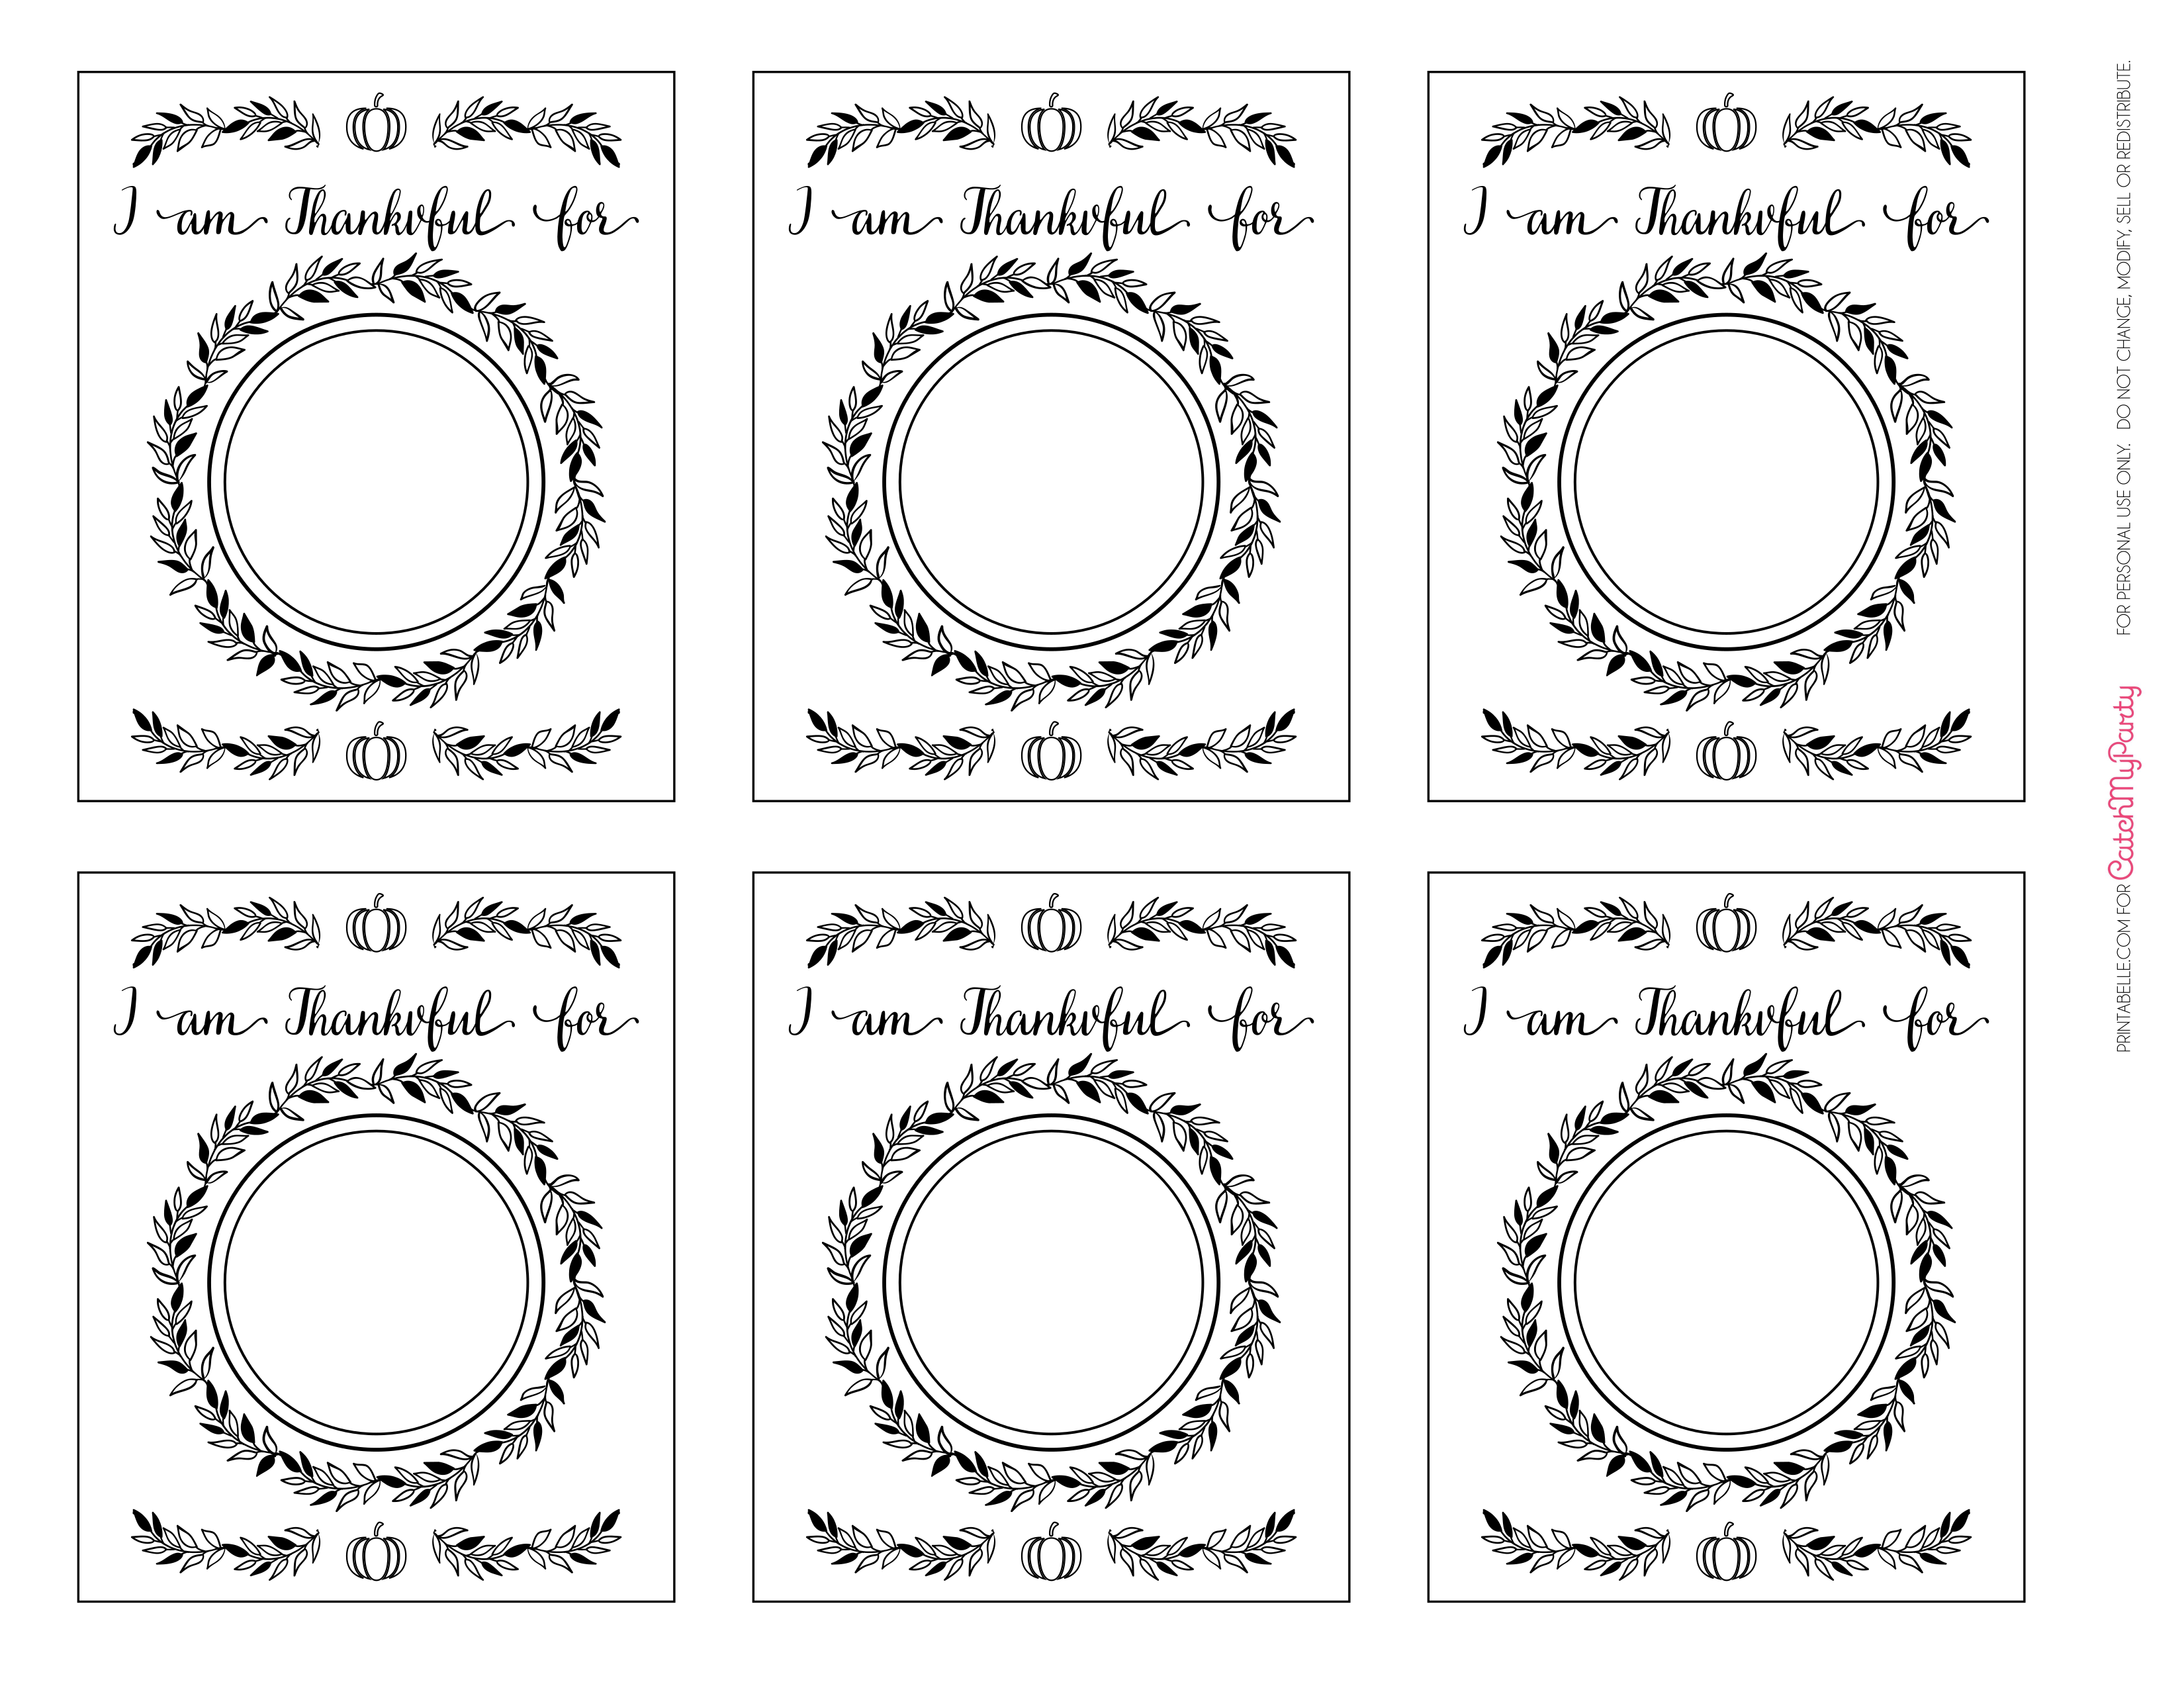 graphic about I Am Thankful for Printable named Free of charge Printable \